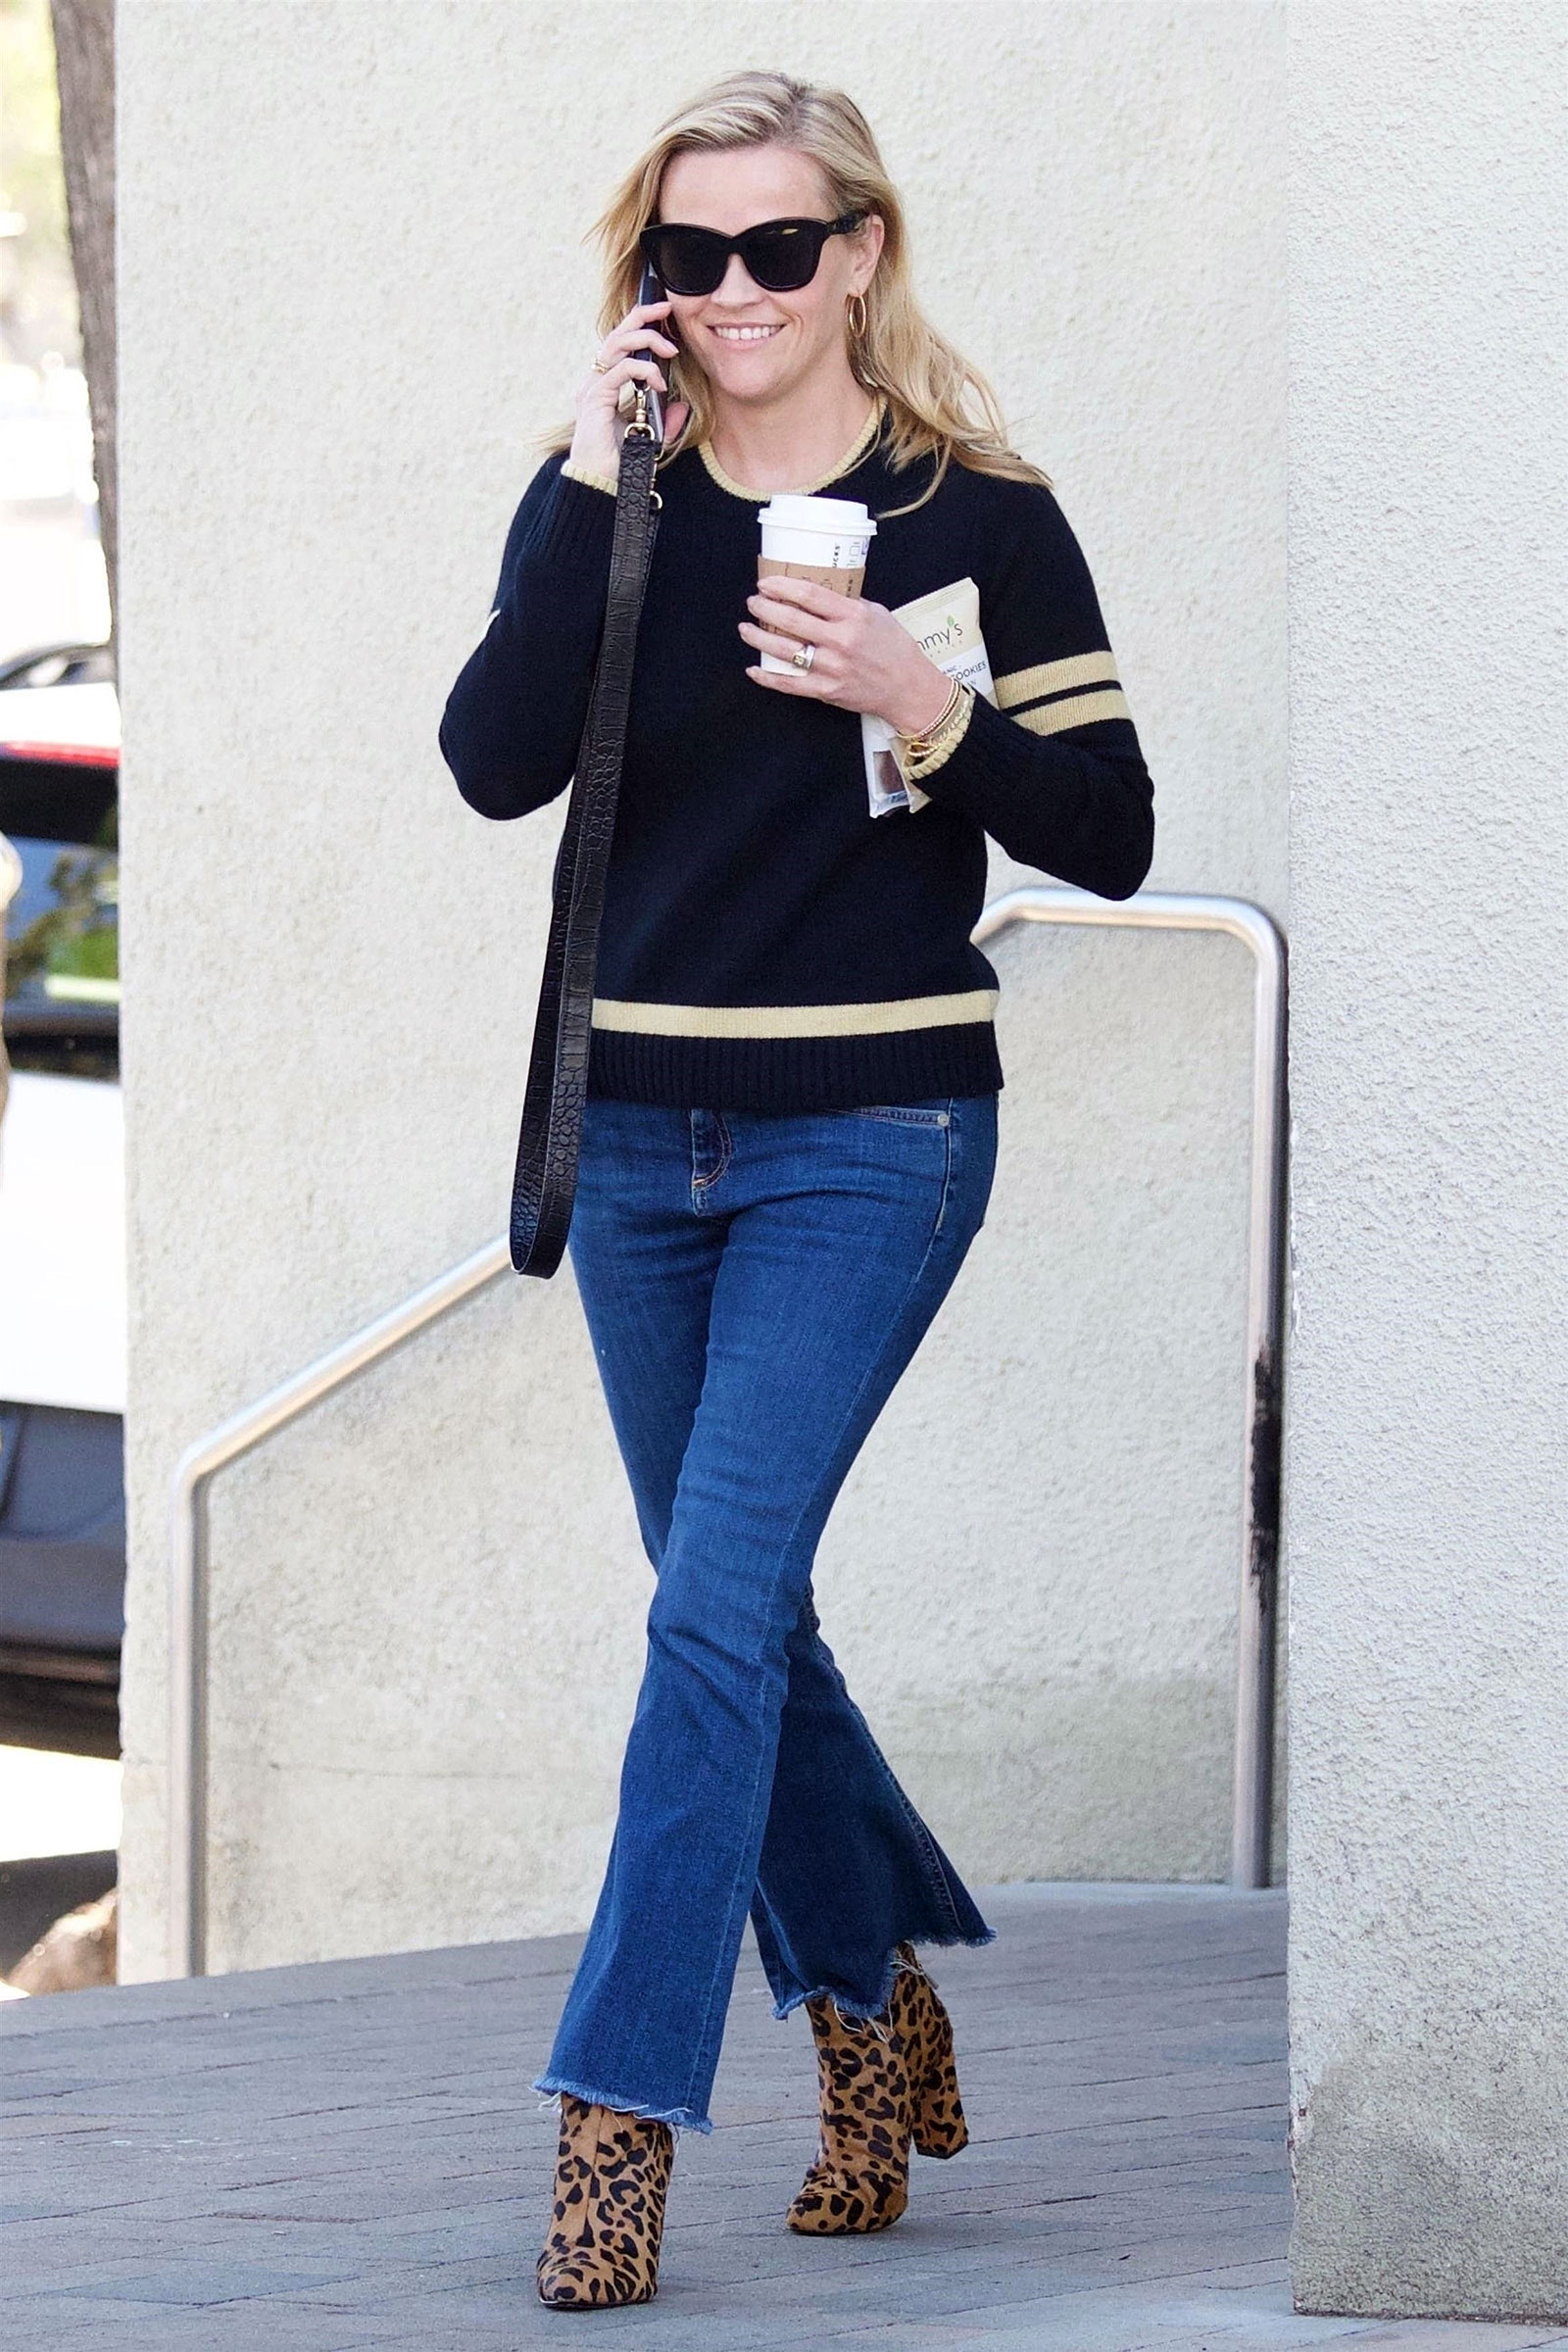 Reese Witherspoon wears her Draper James Spirit sweater with crop jeans and leopard print ankle booties.